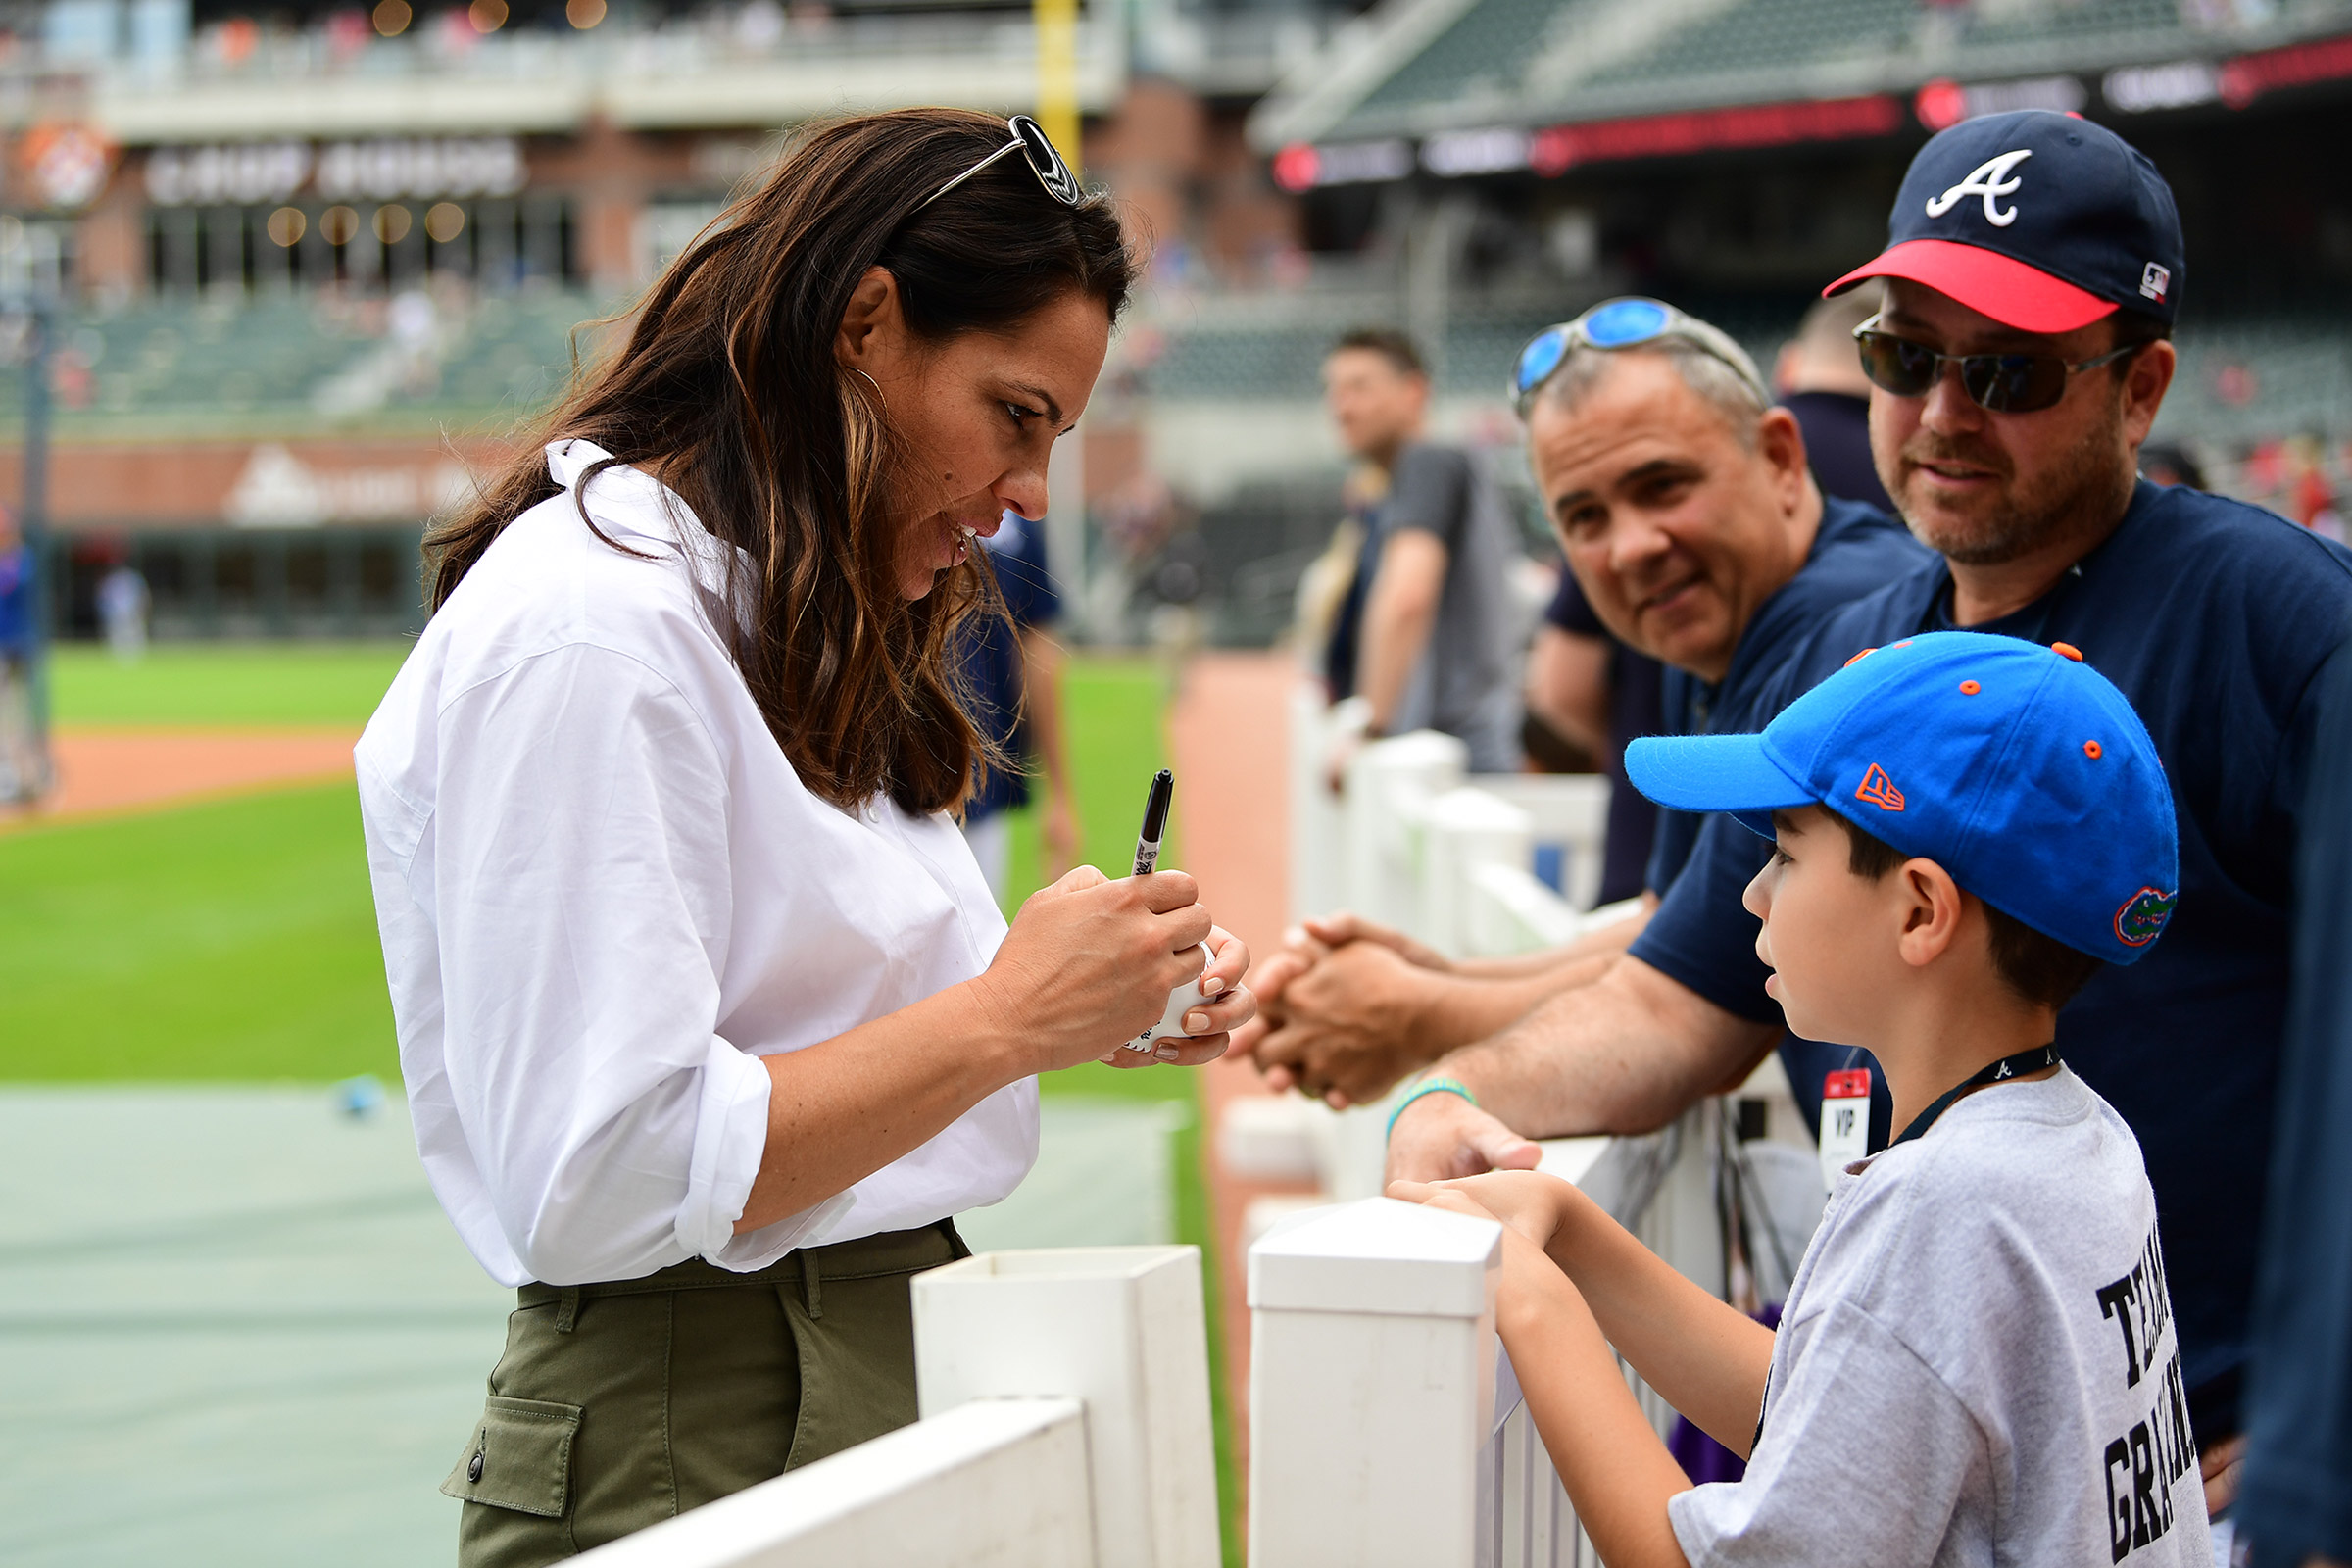 ESPN baseball broadcaster Jessica Mendoza signs autographs at SunTrust Park in Atlanta on April 12, 2019.